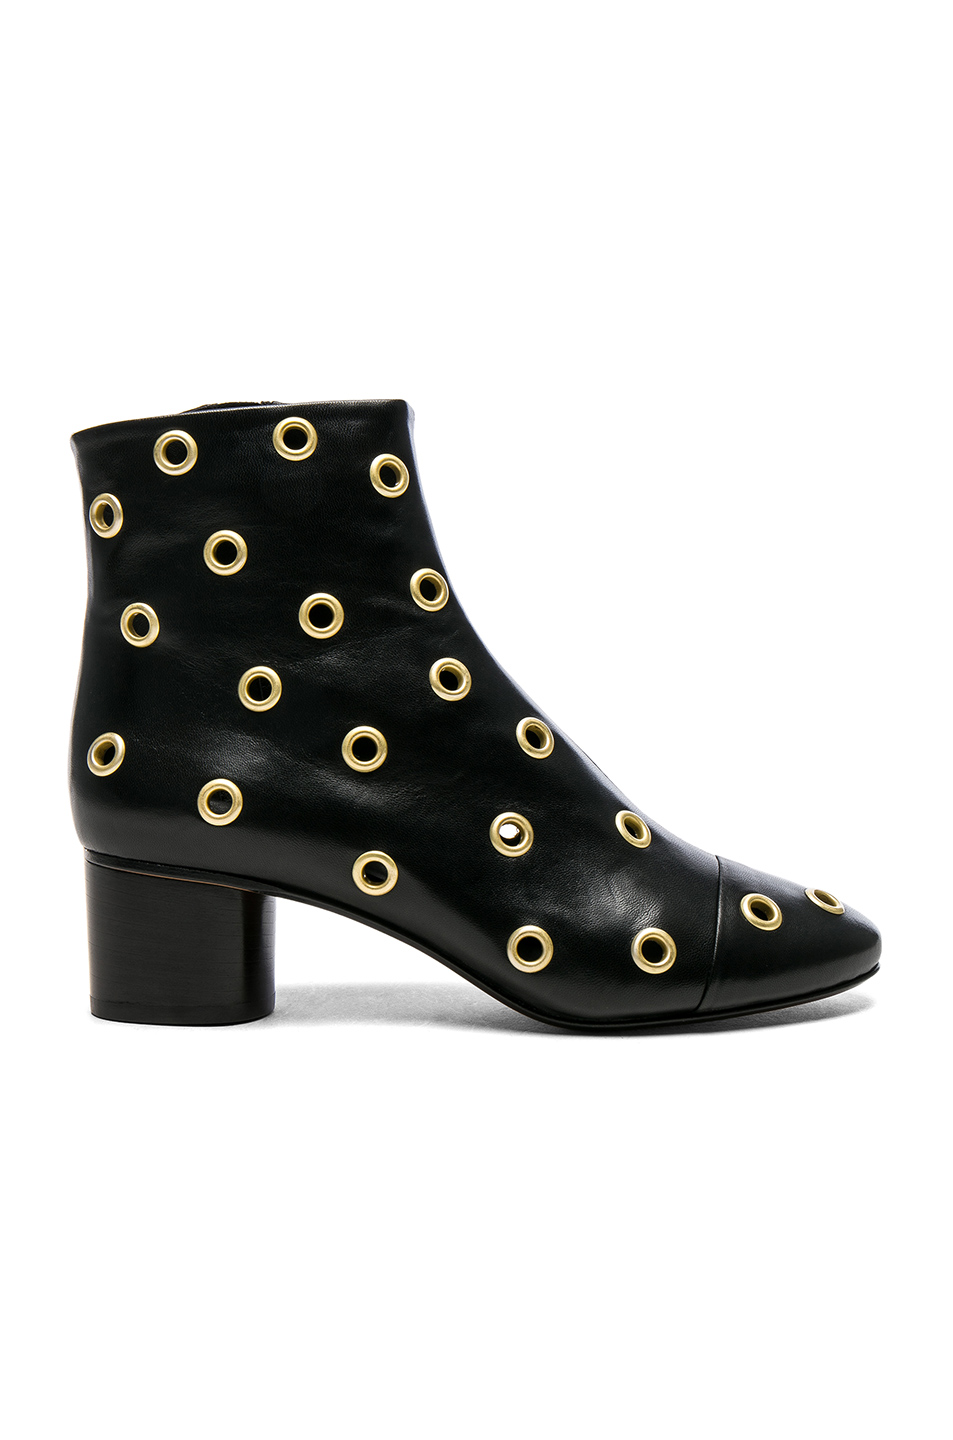 Isabel Marant Eyelet Leather Danay Ankle Boots in Black